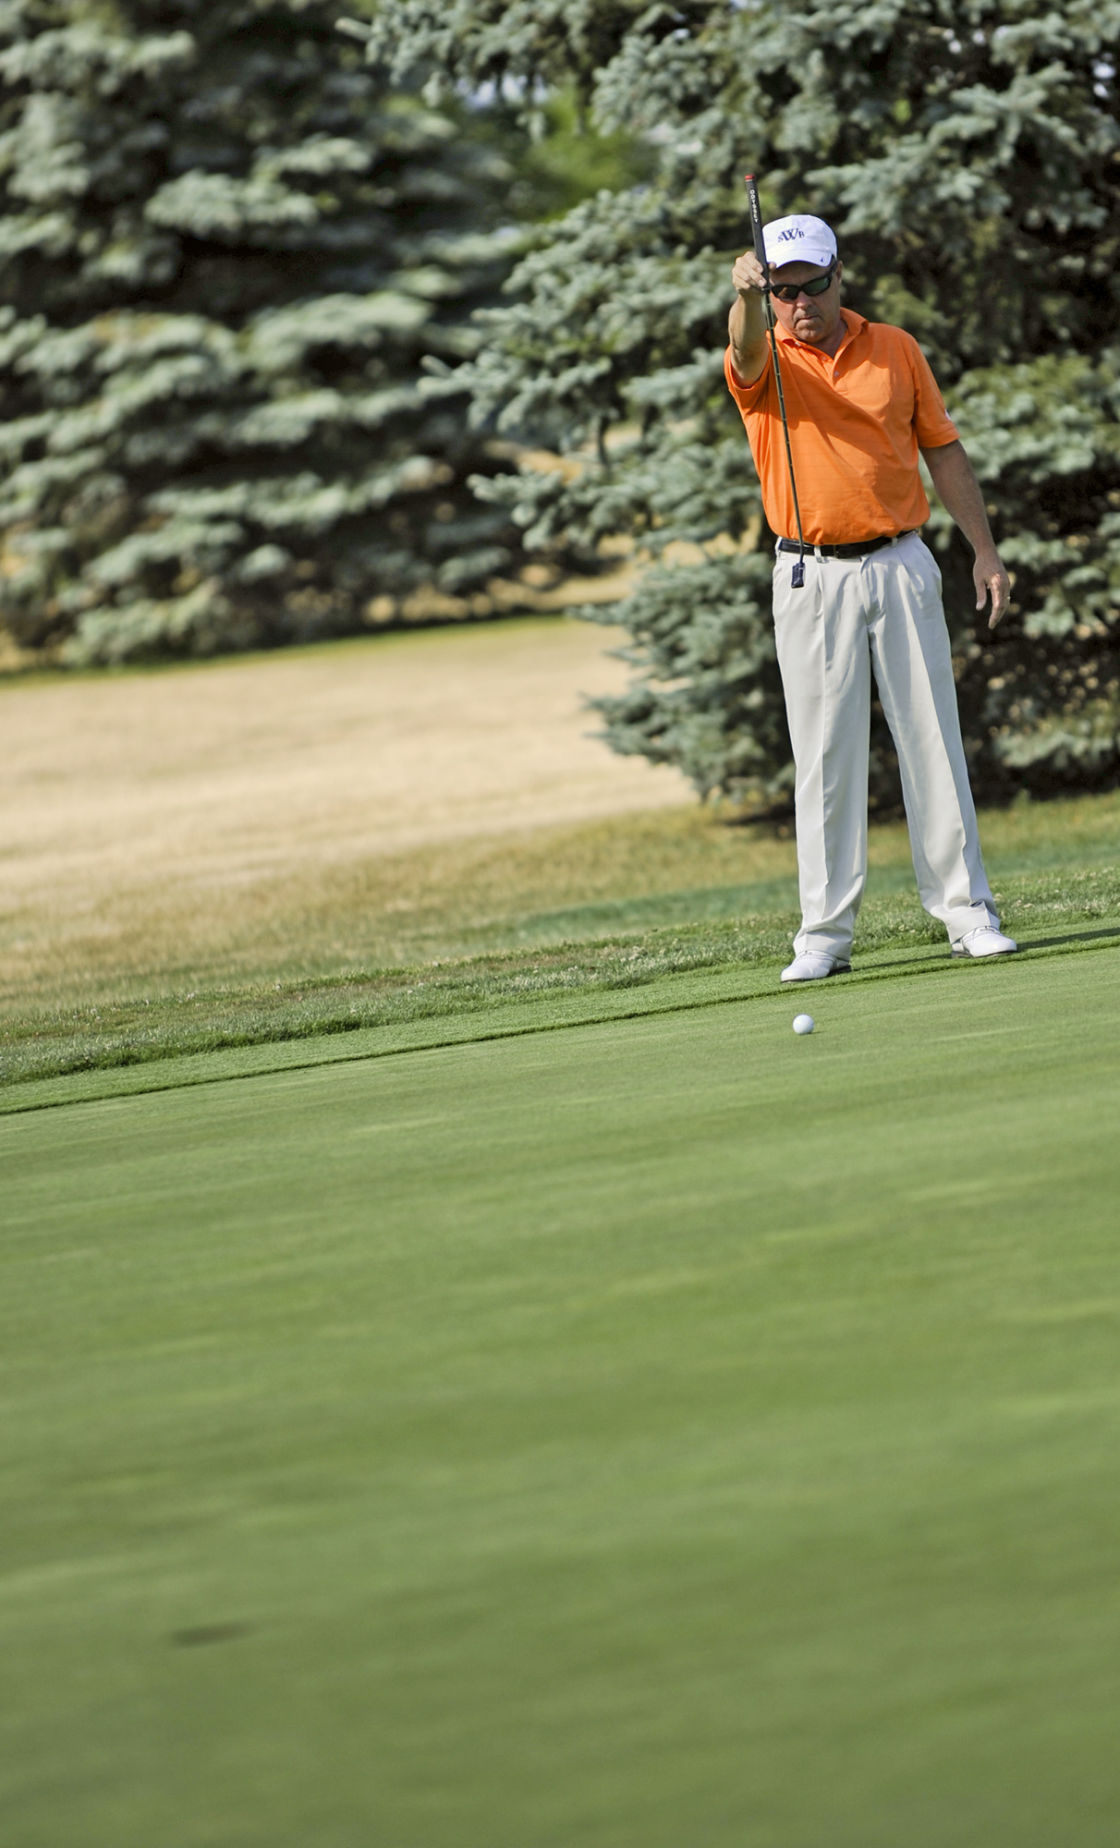 Local golf: Hughes edges Algie to win 14th Watertown City Golf